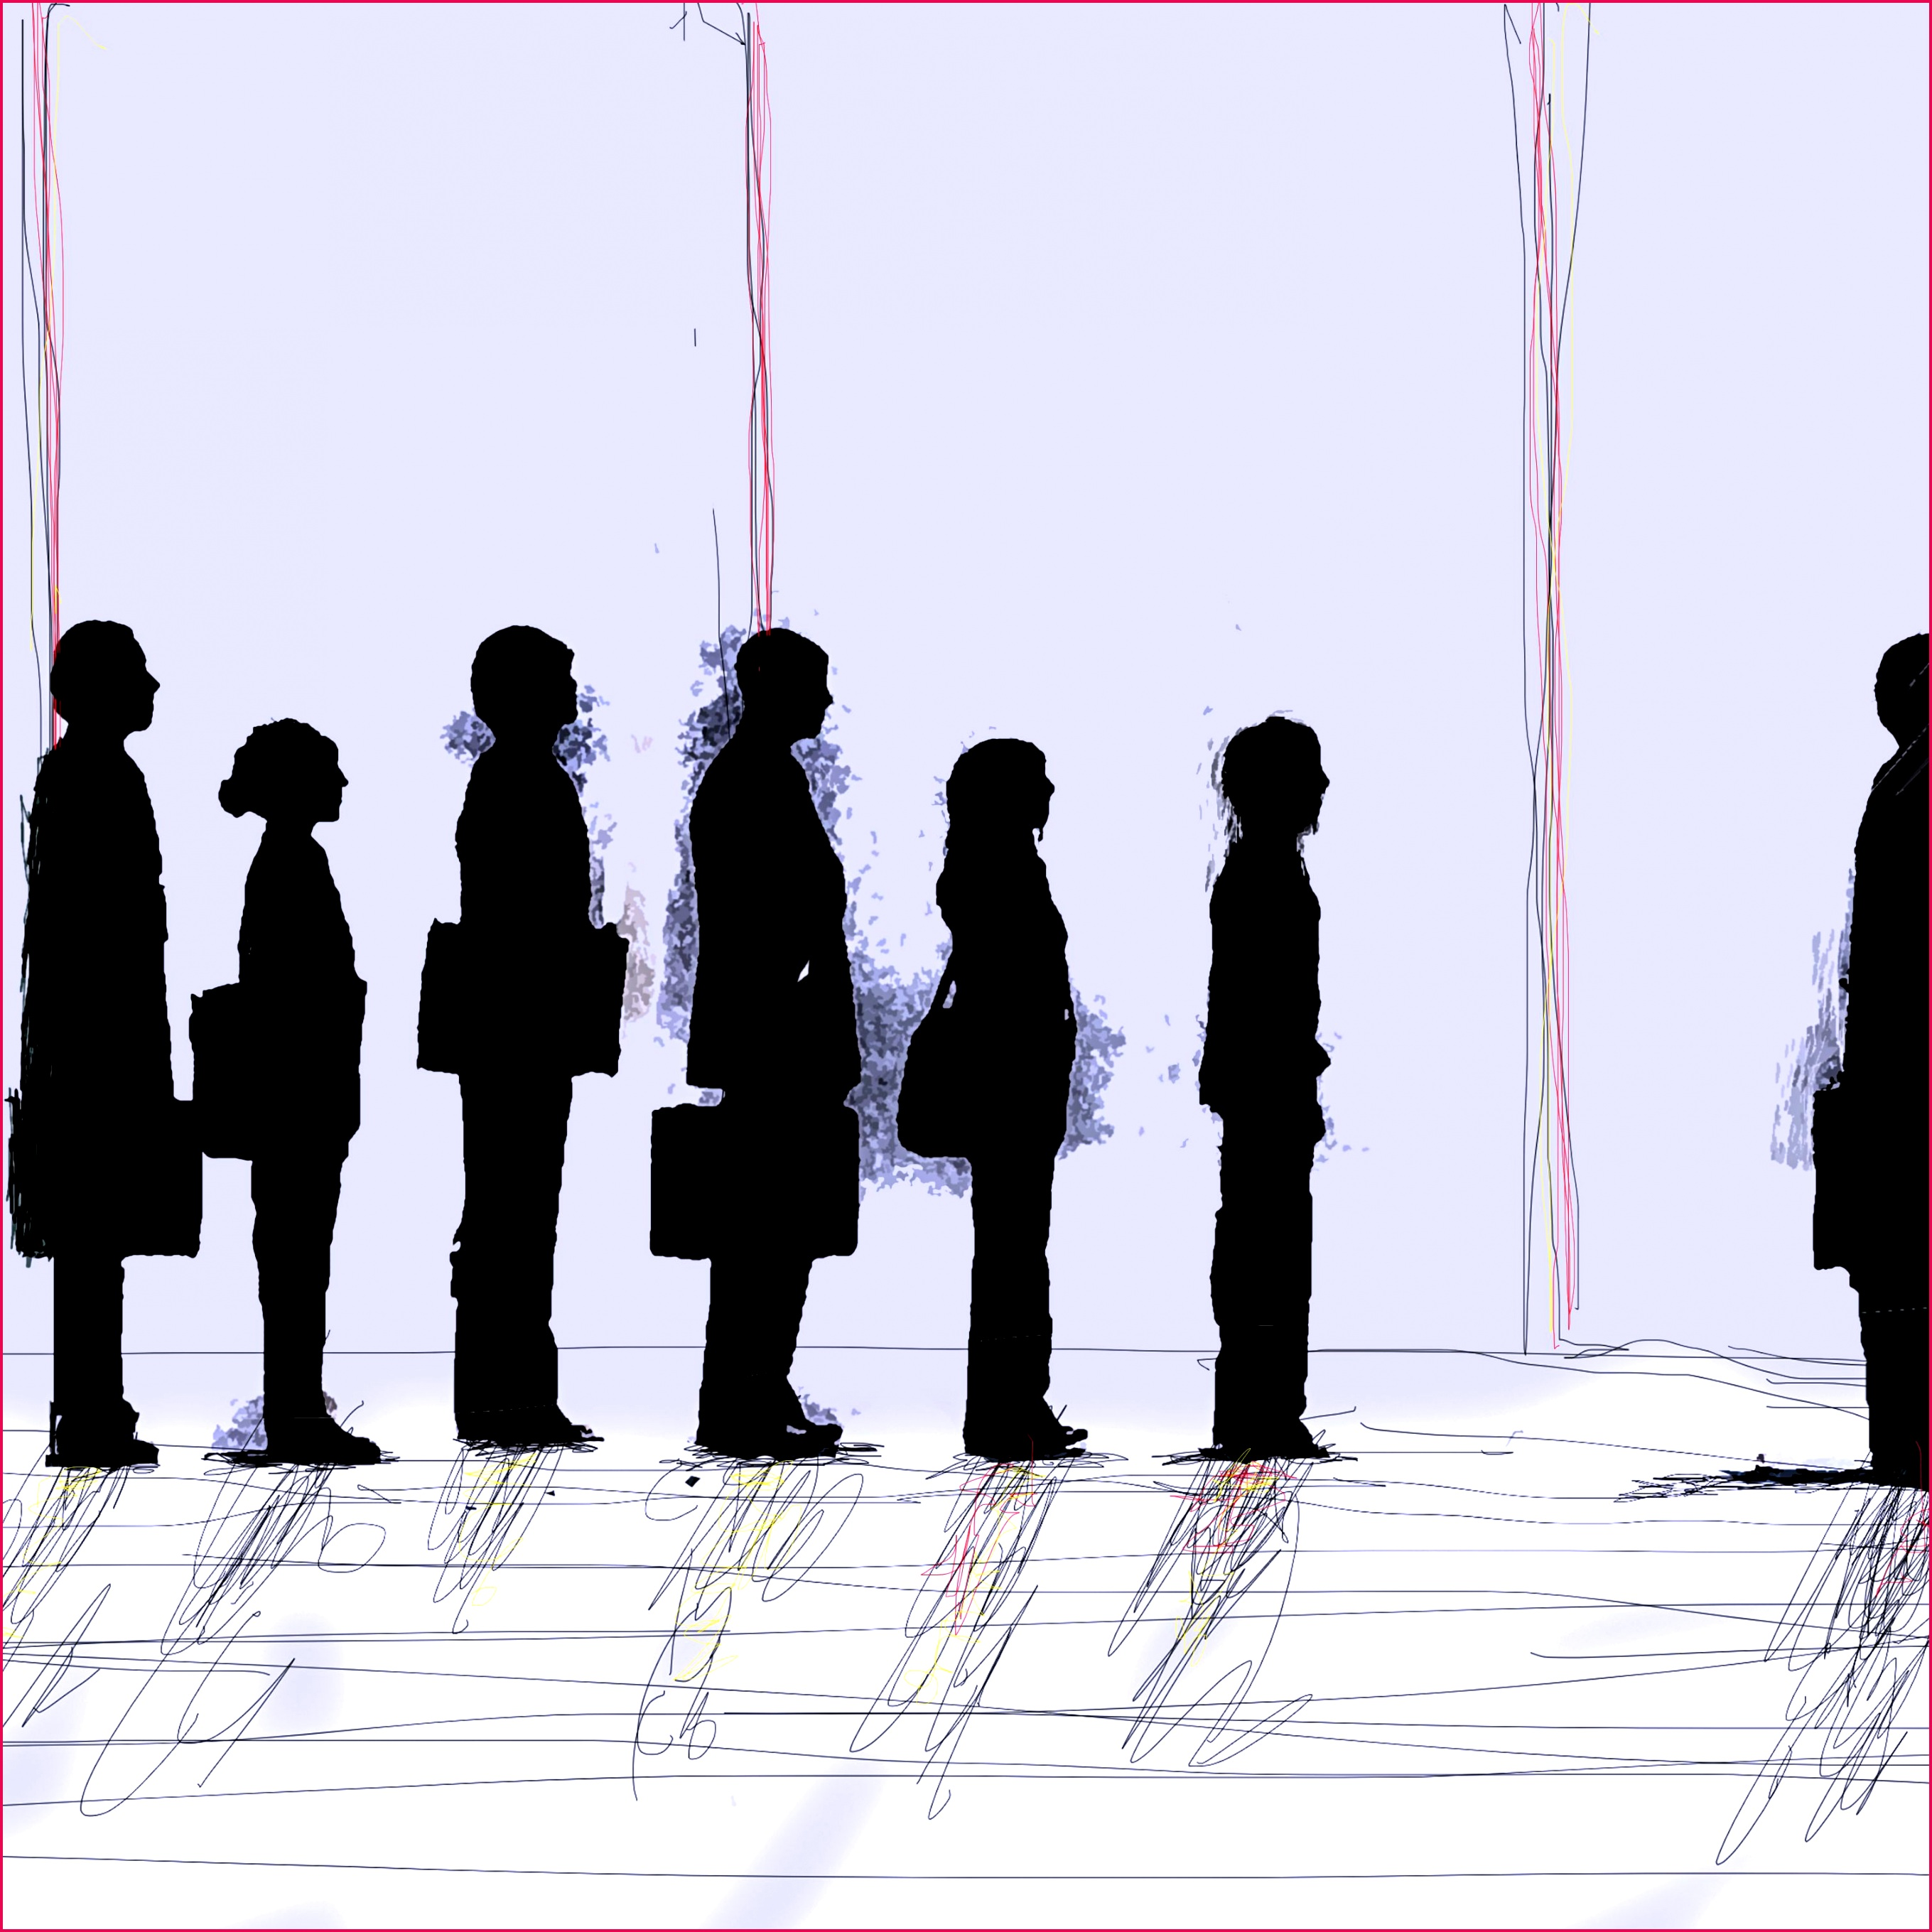 business people standing in interview queue 5af4a d1cf e0c7c